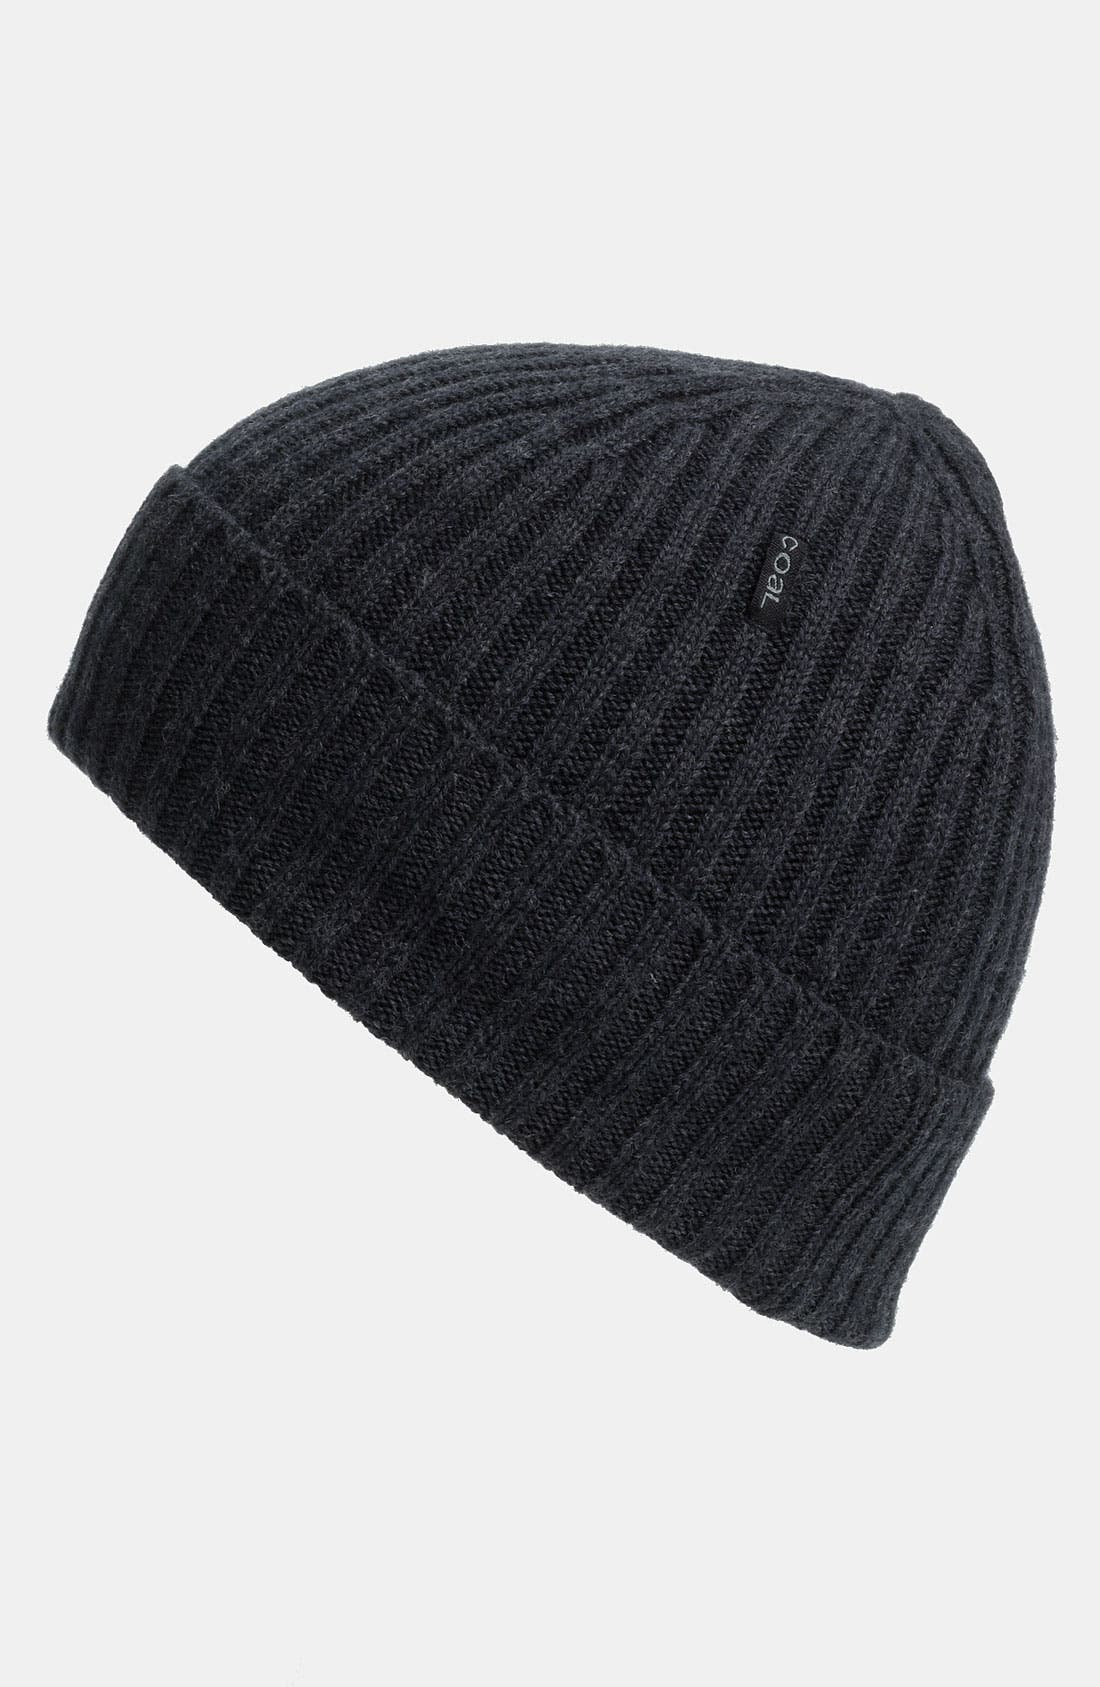 Main Image - Coal 'Emerson' Knit Cap